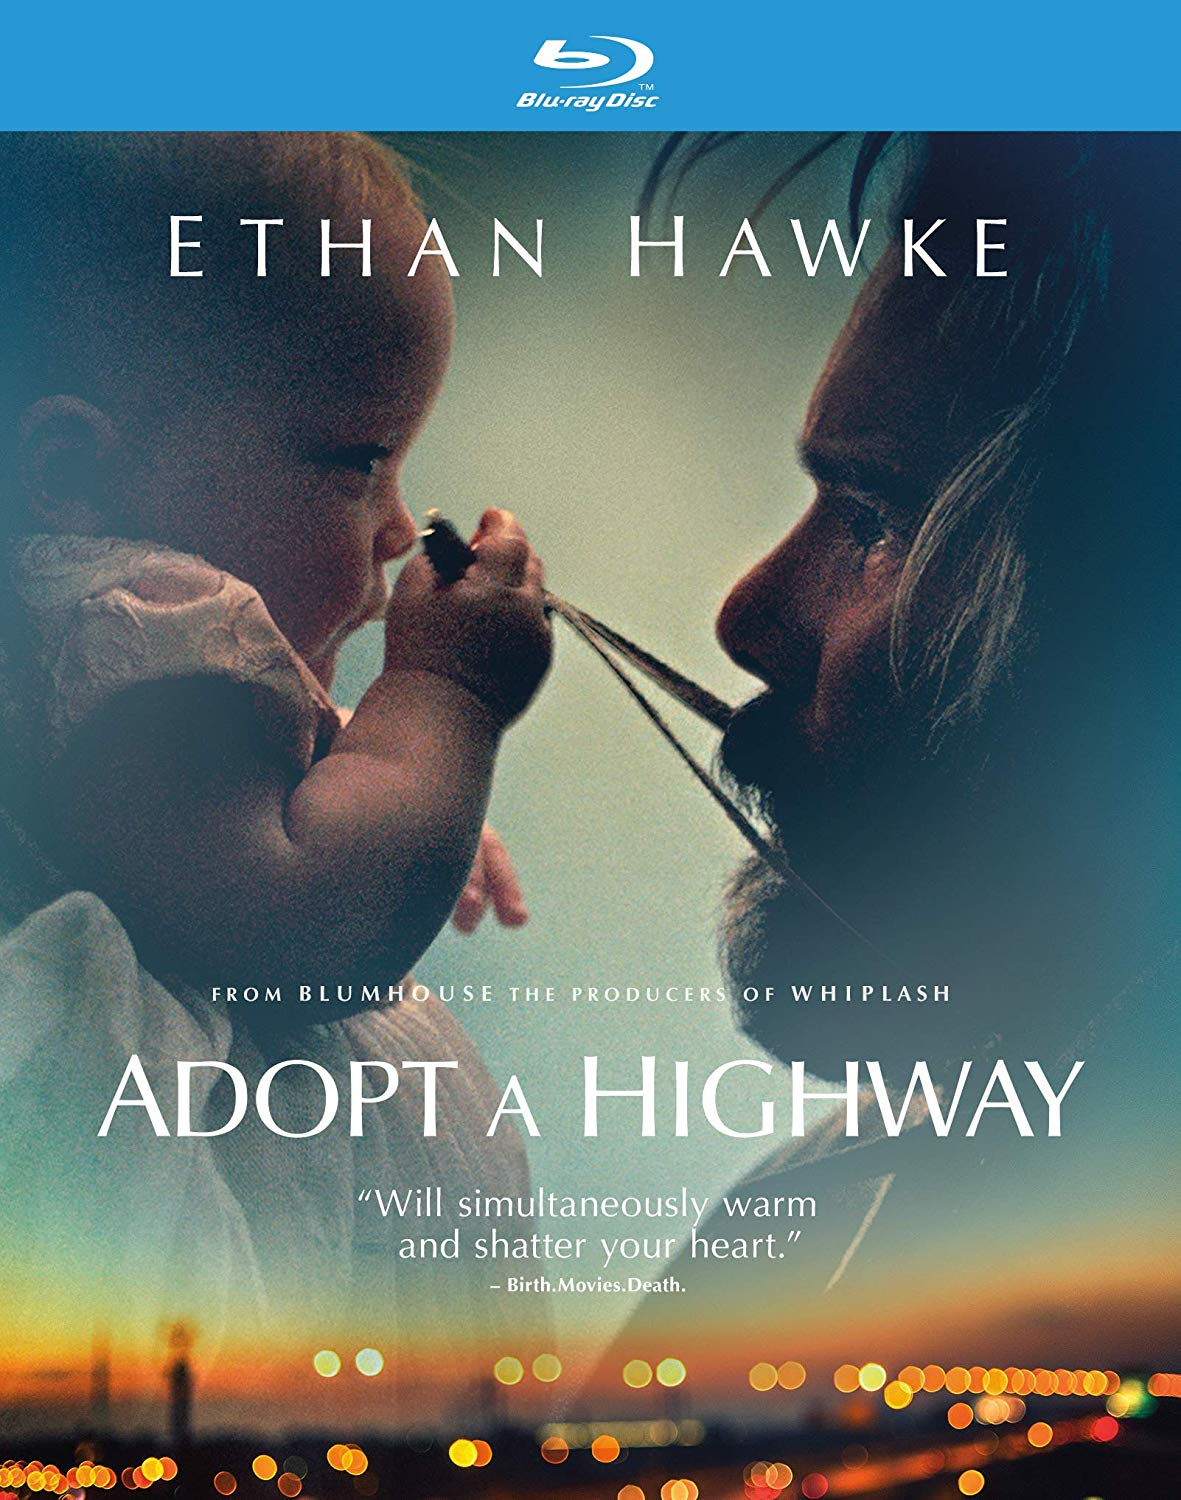 Adopt A Highway Bluray Cover